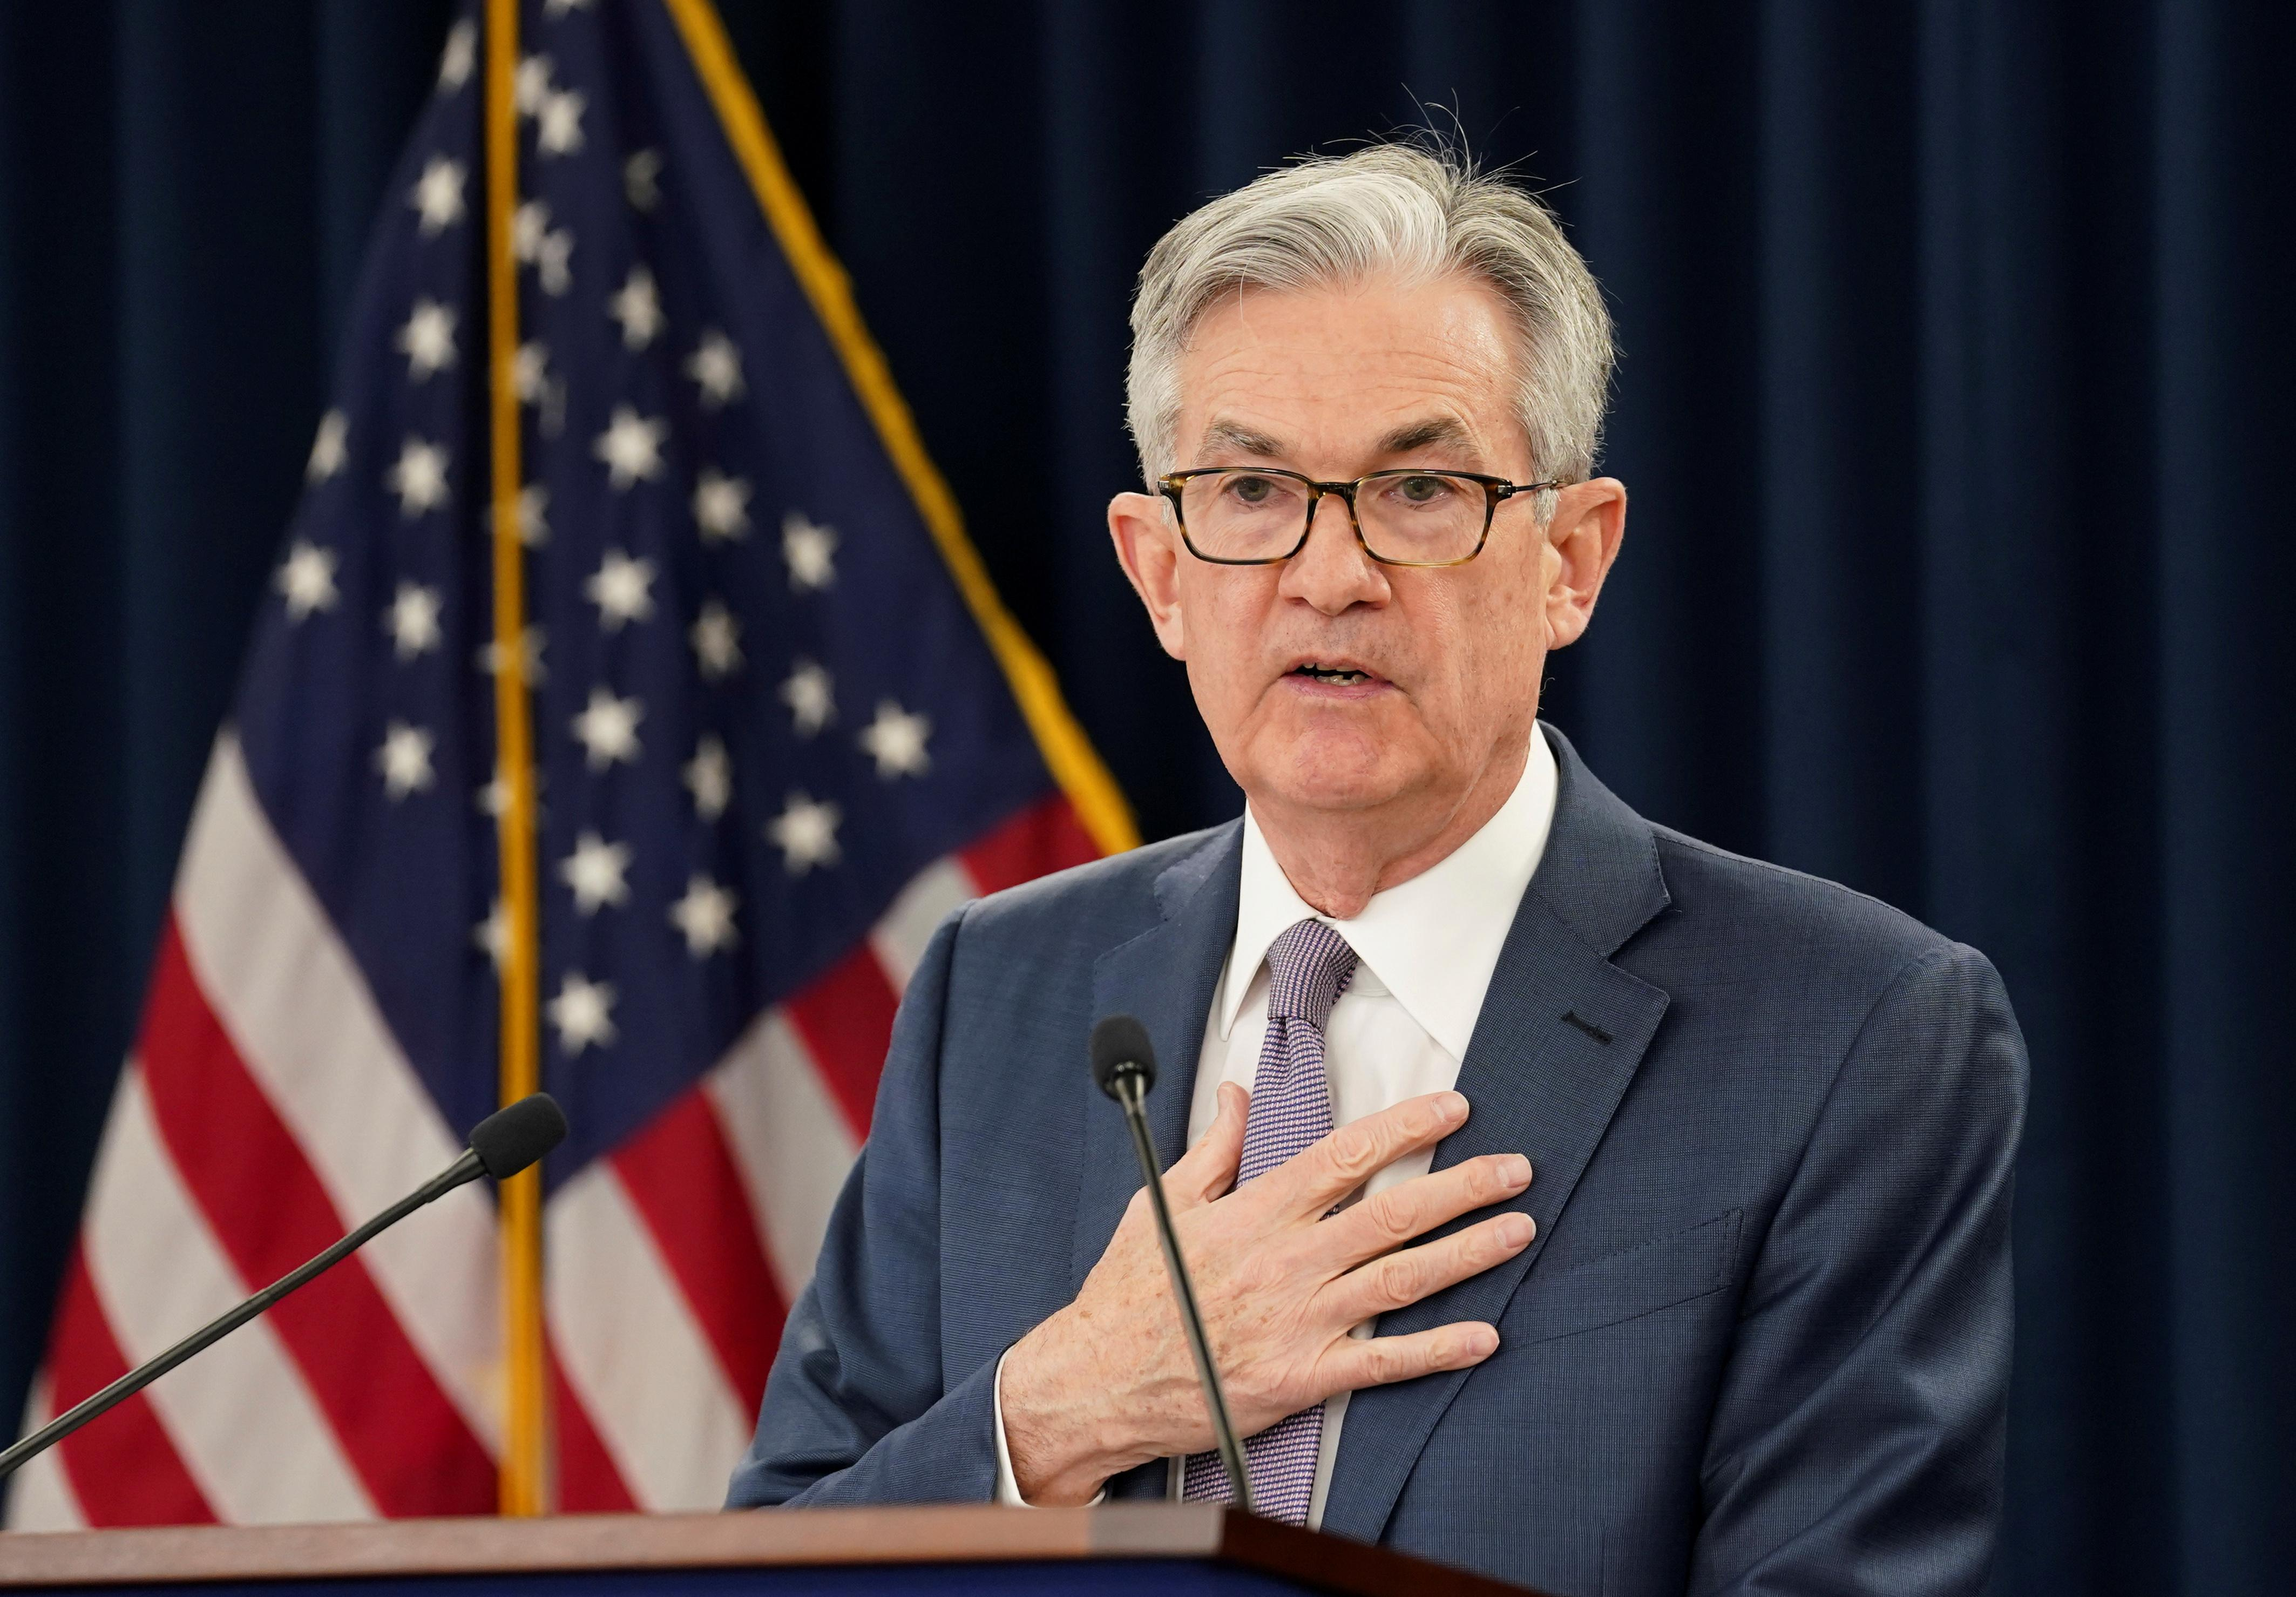 'W-shaped' recovery may be too optimistic, Fed's Powell suggests